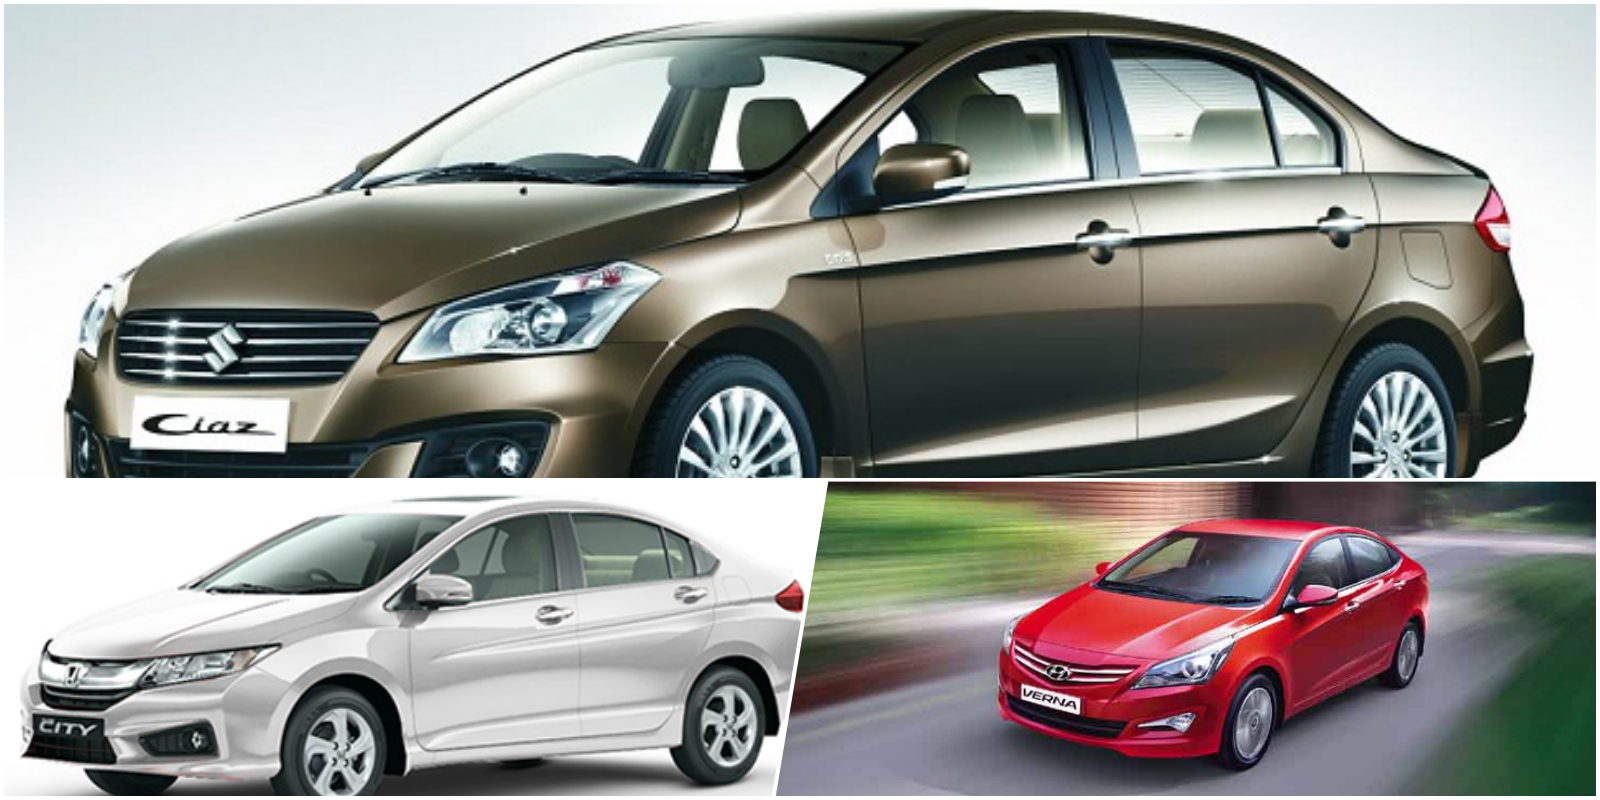 Hyundai Verna 4S Vs. Honda City Vs. Maruti Suzuki Ciaz- Spec comparo